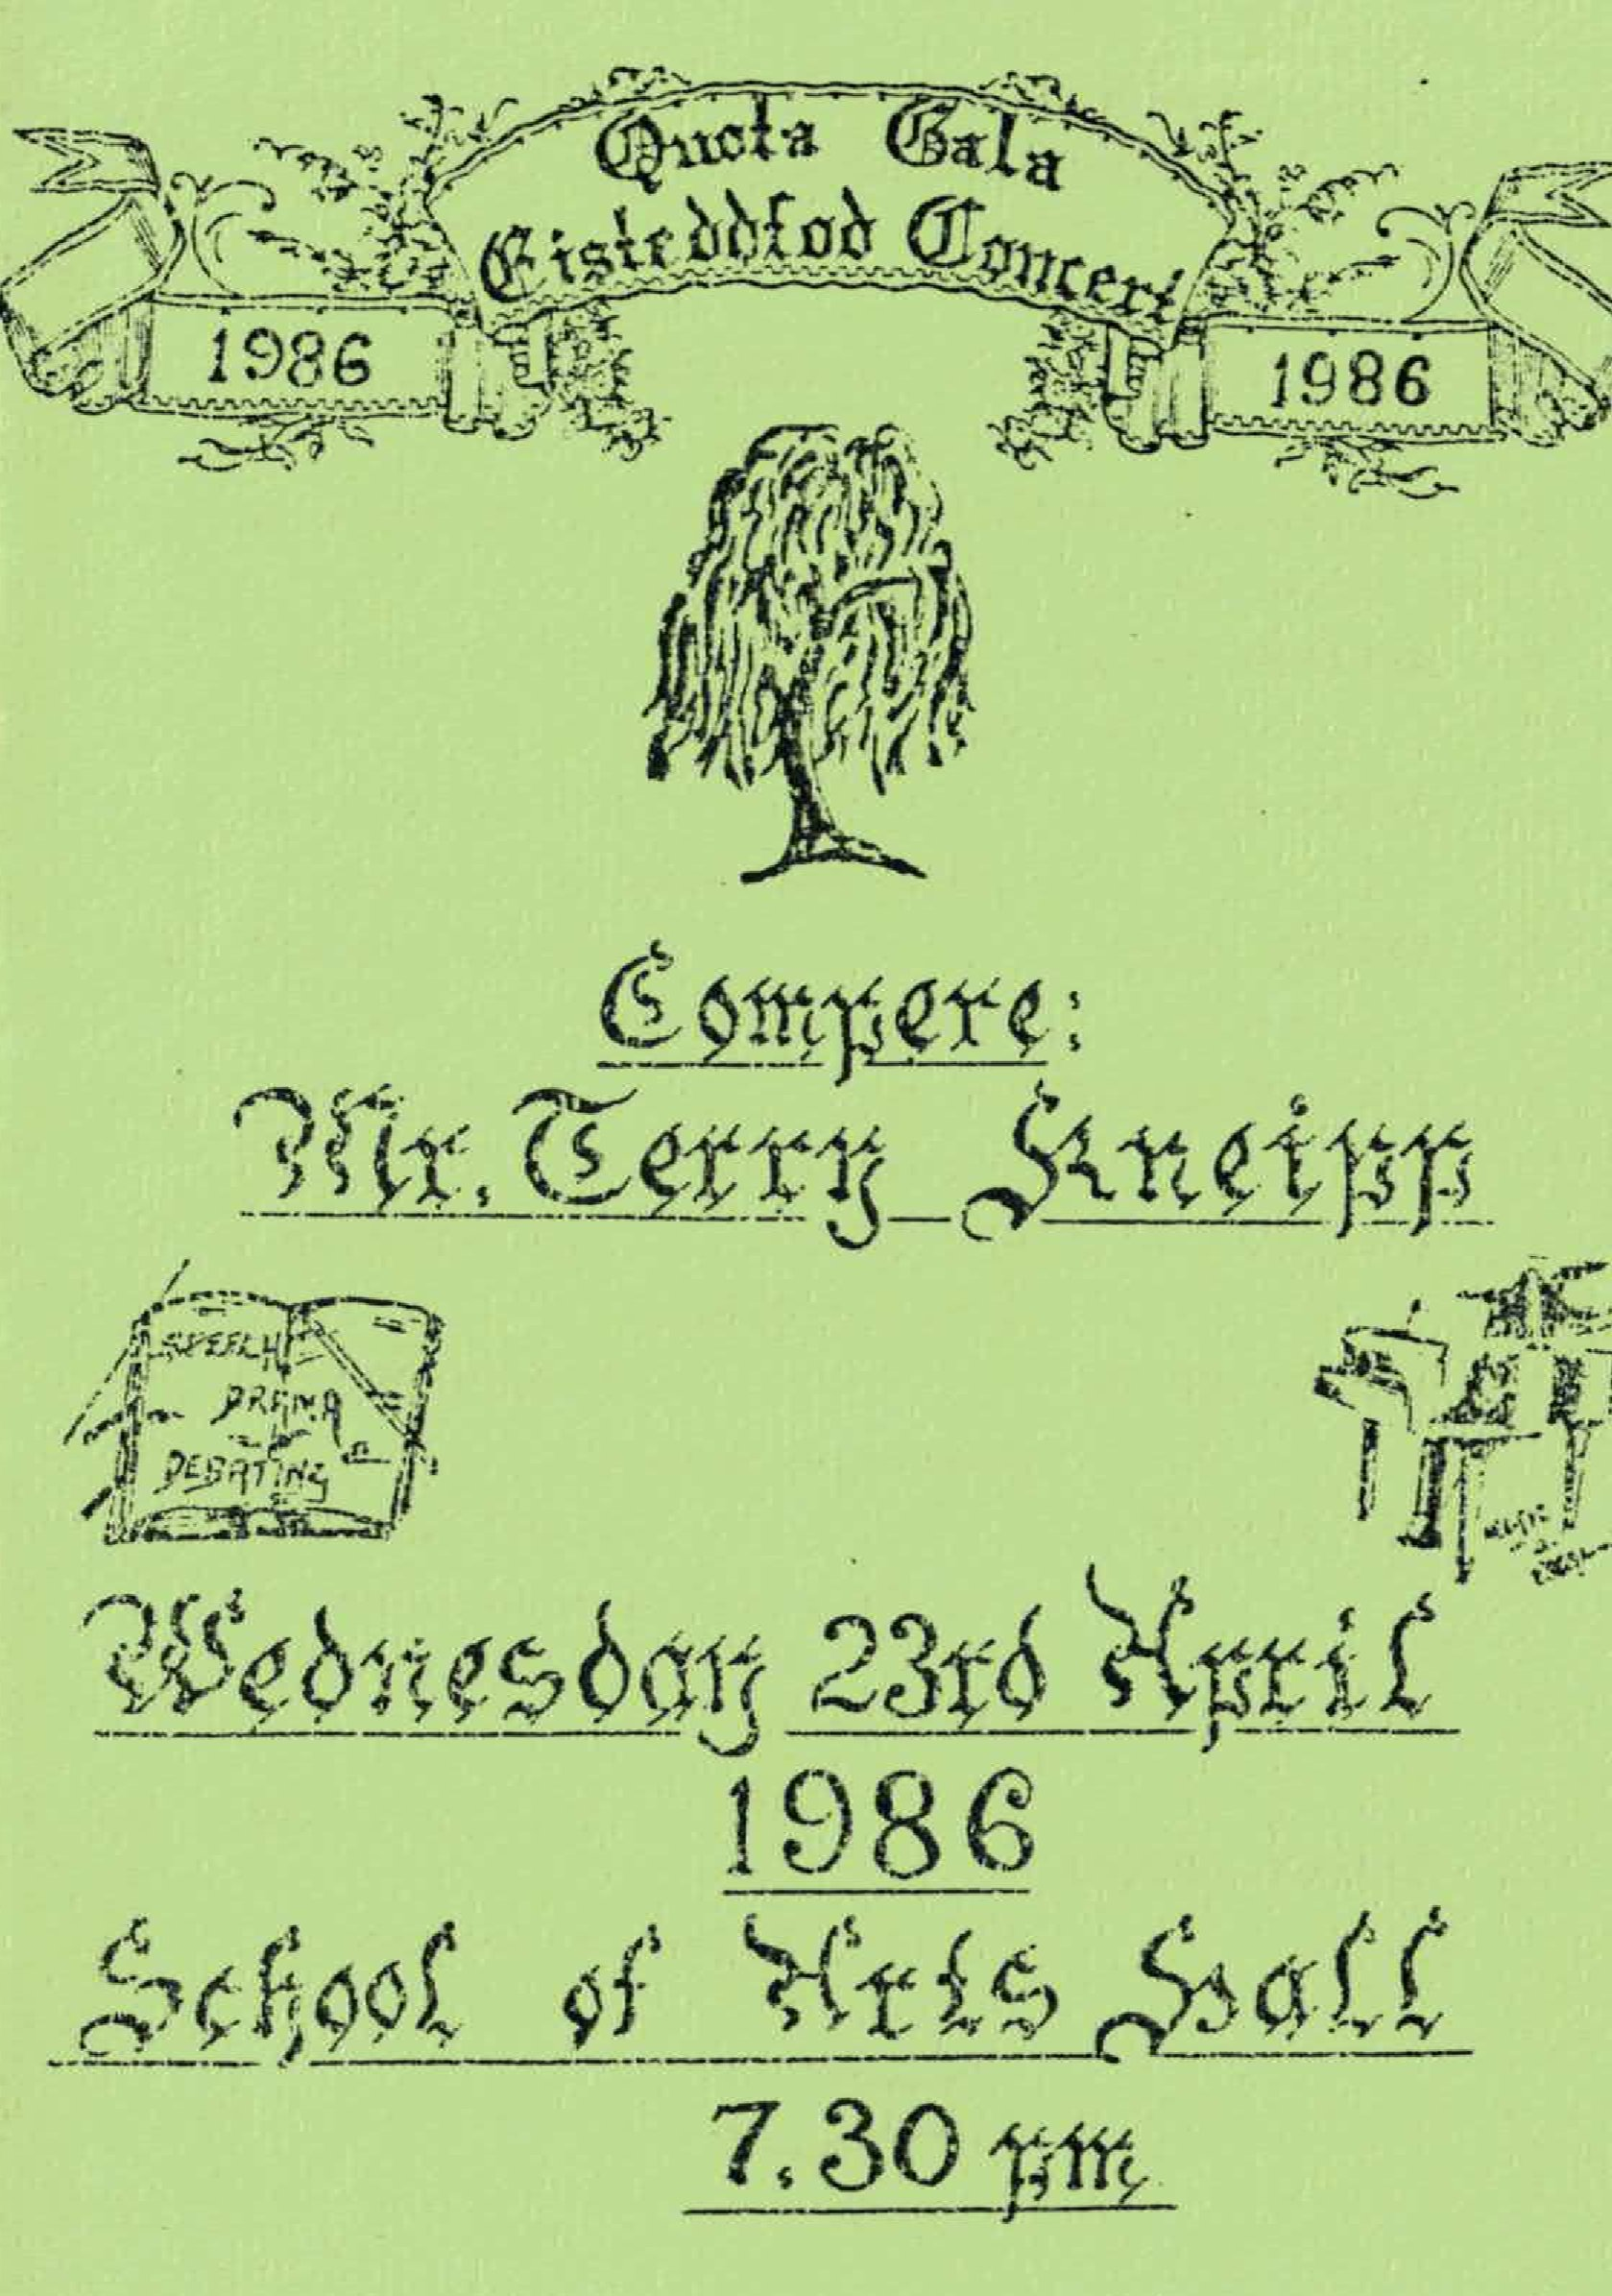 1986 Eisteddfod Programme Cover